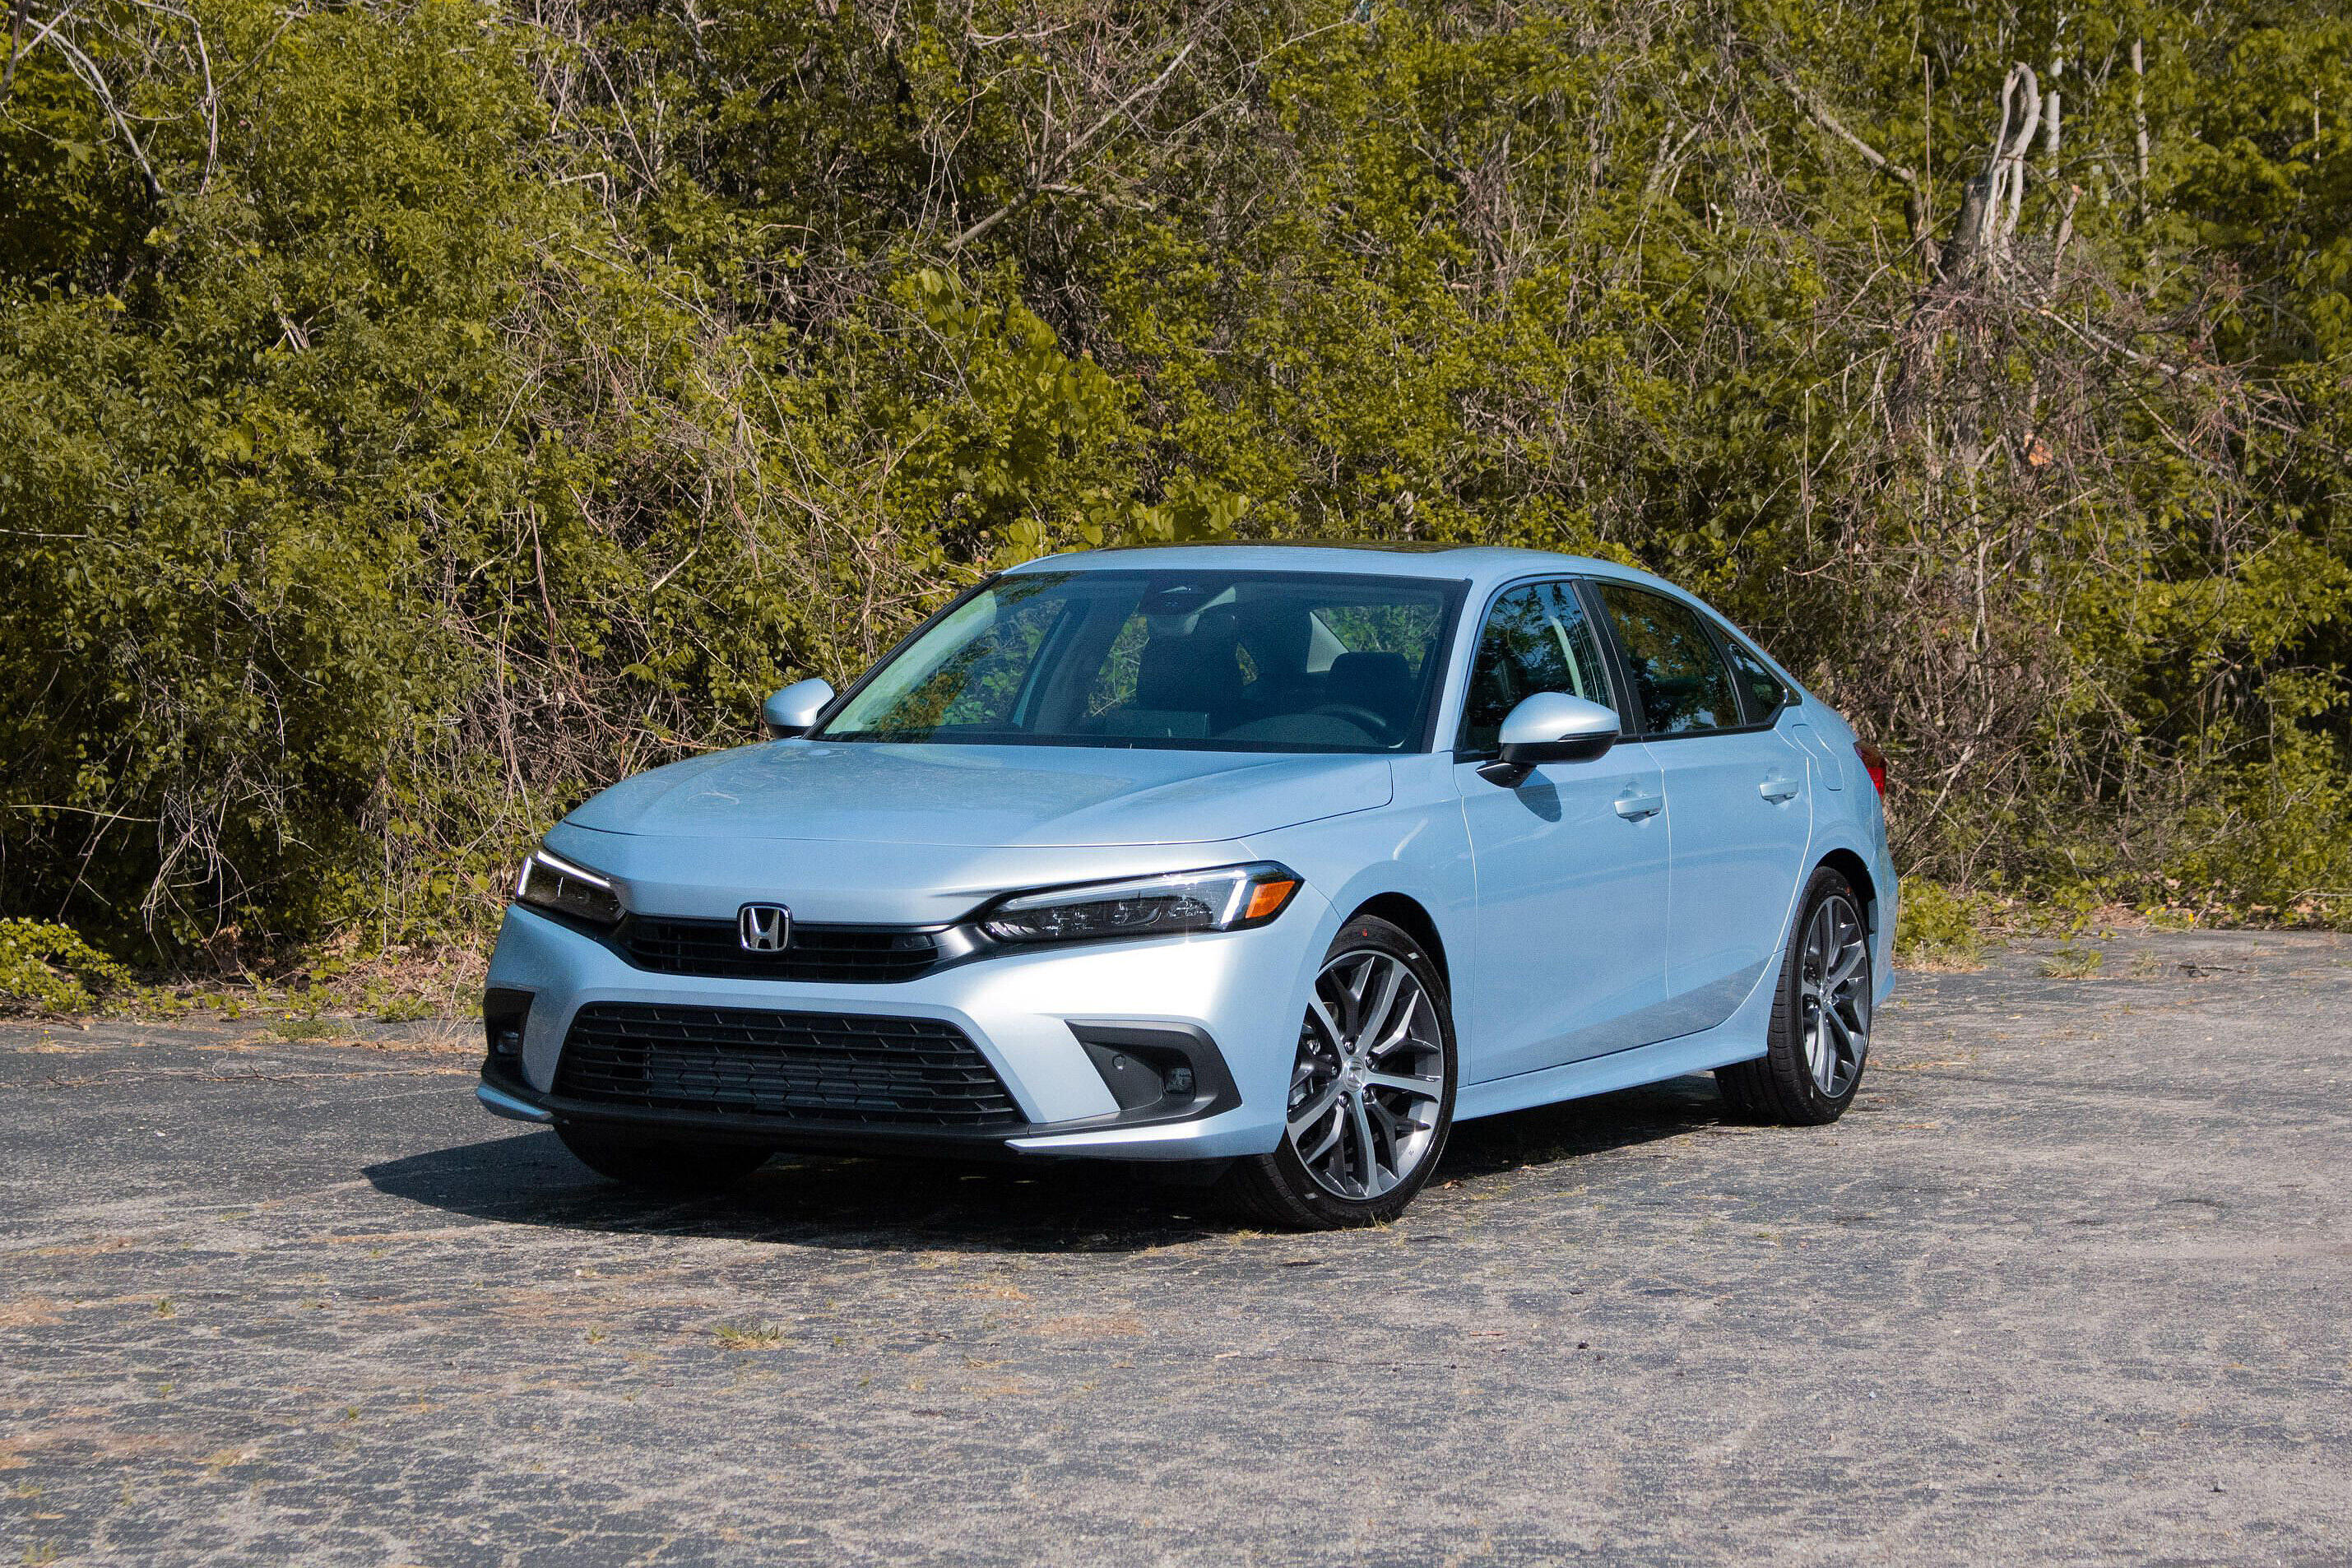 2022 Honda Civic review: You still can't go wrong     - Roadshow